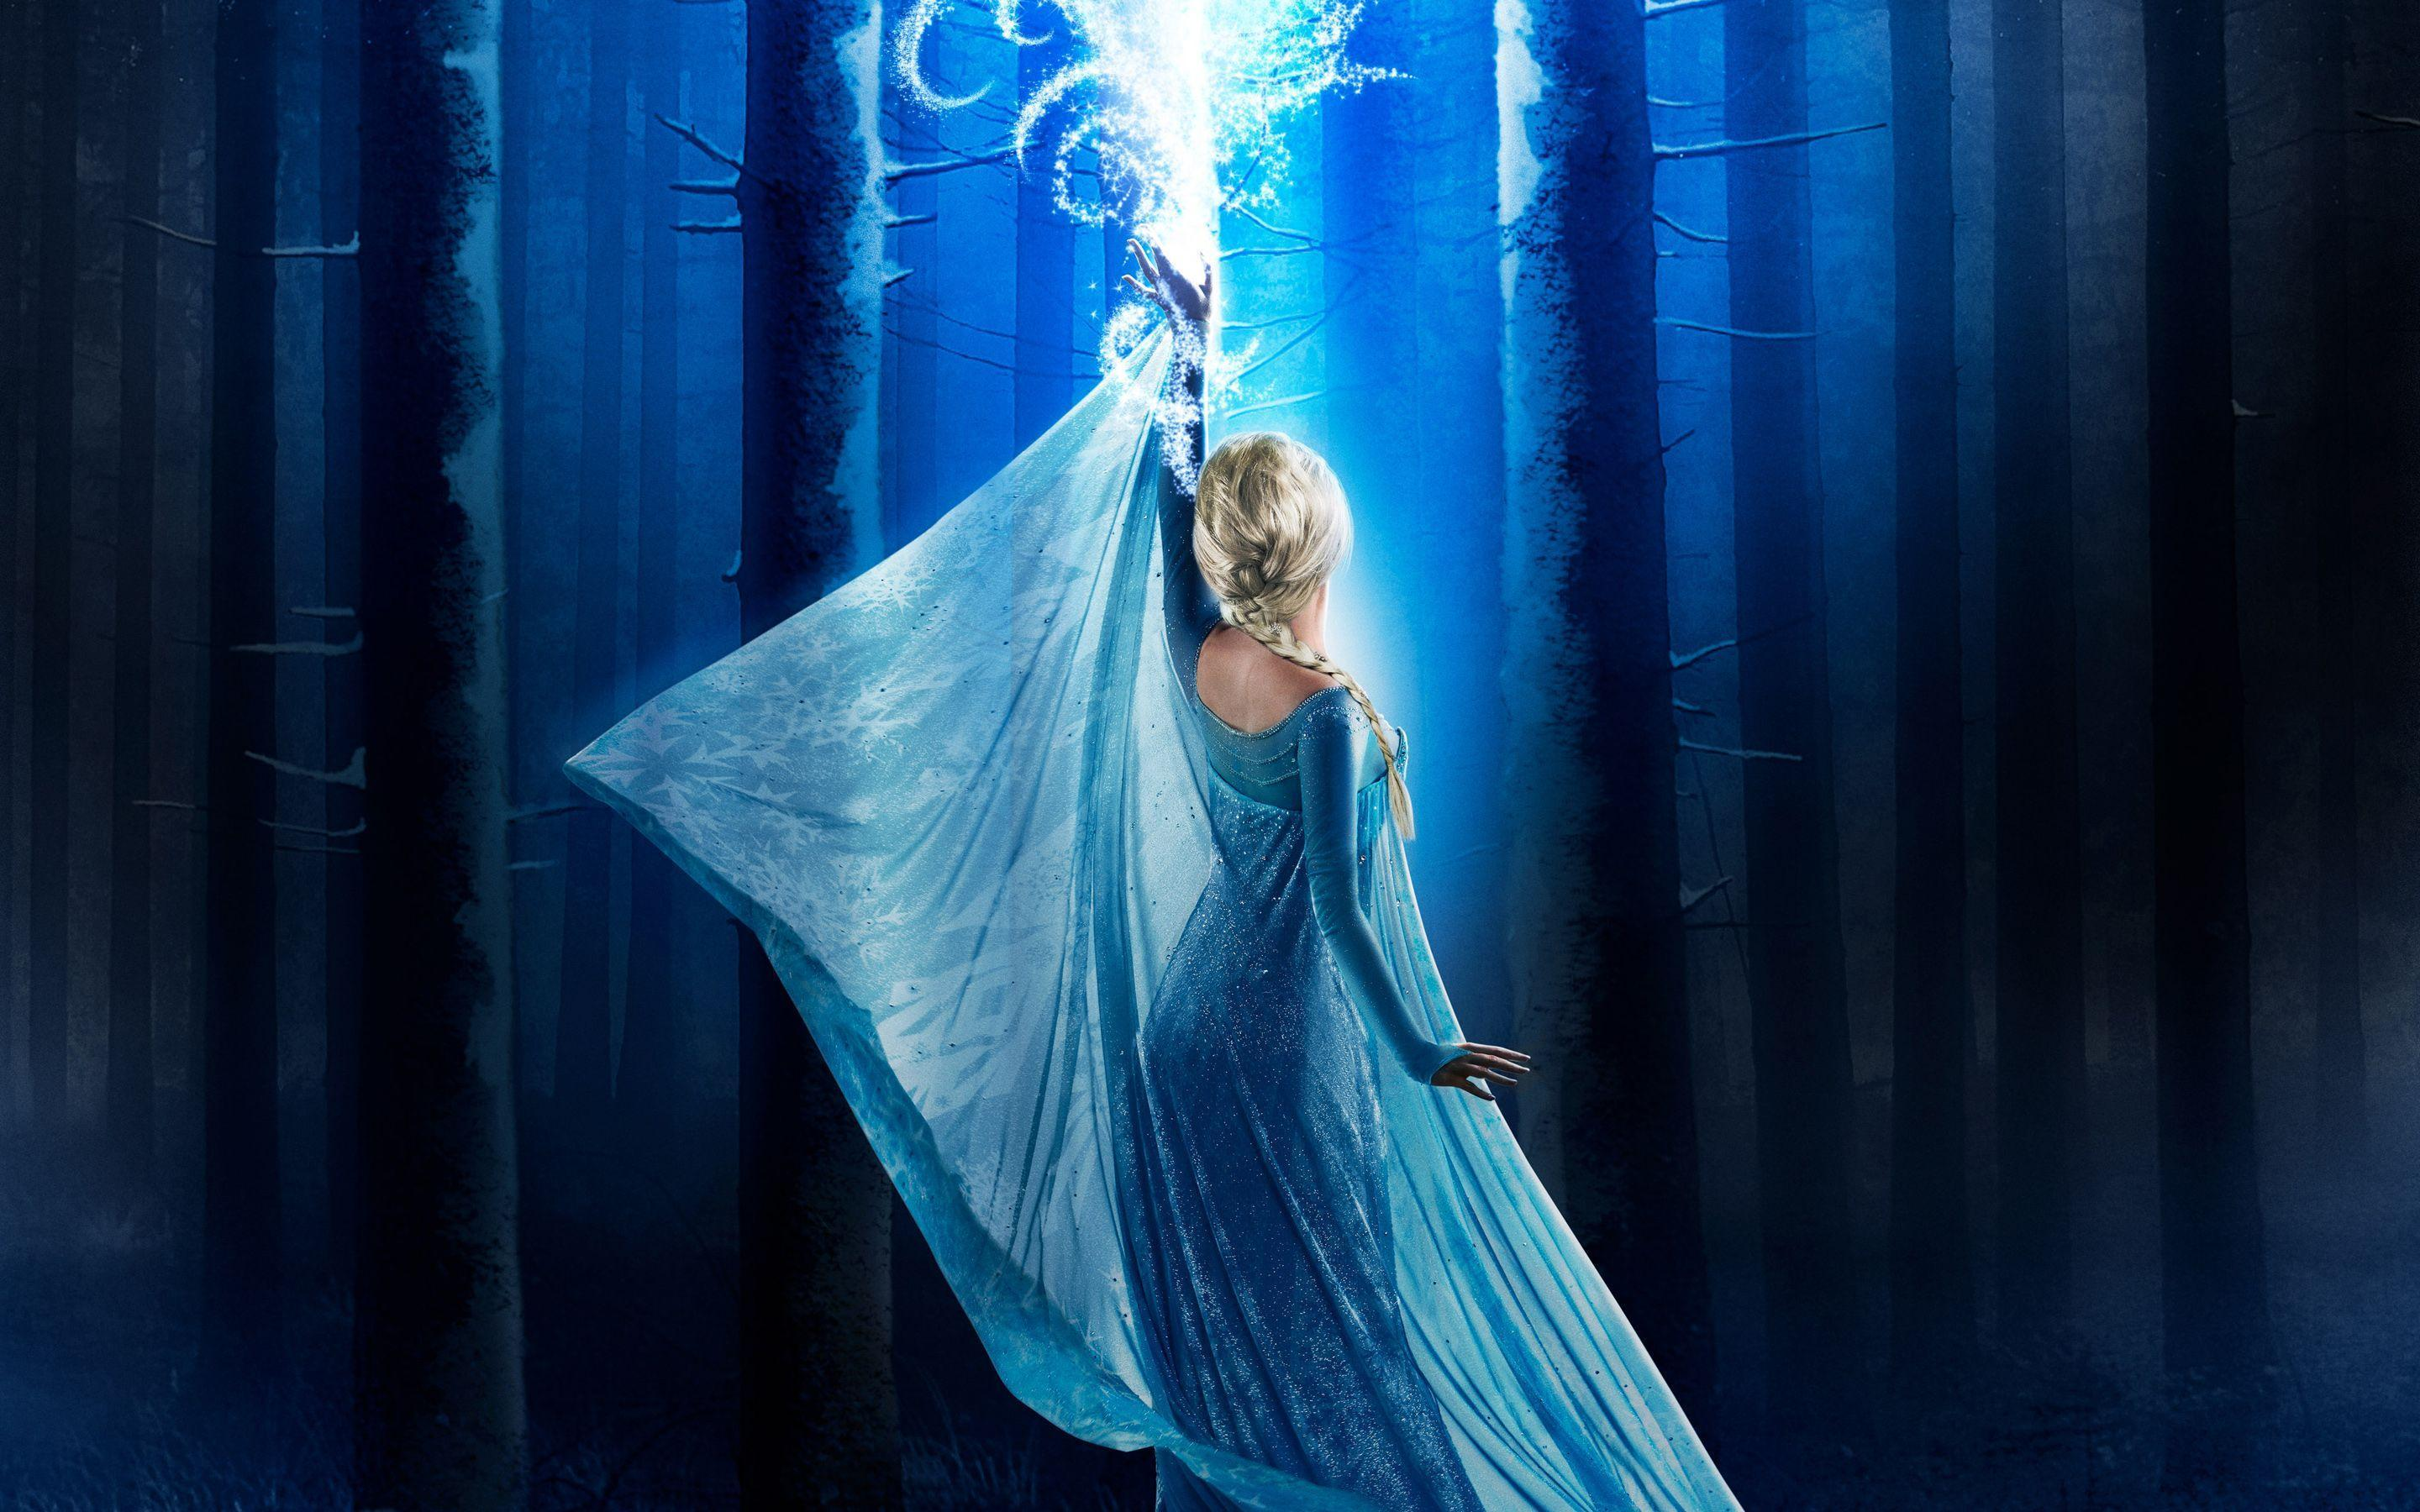 Elsa in Once Upon a Time Season 4 Wallpapers | HD Wallpapers